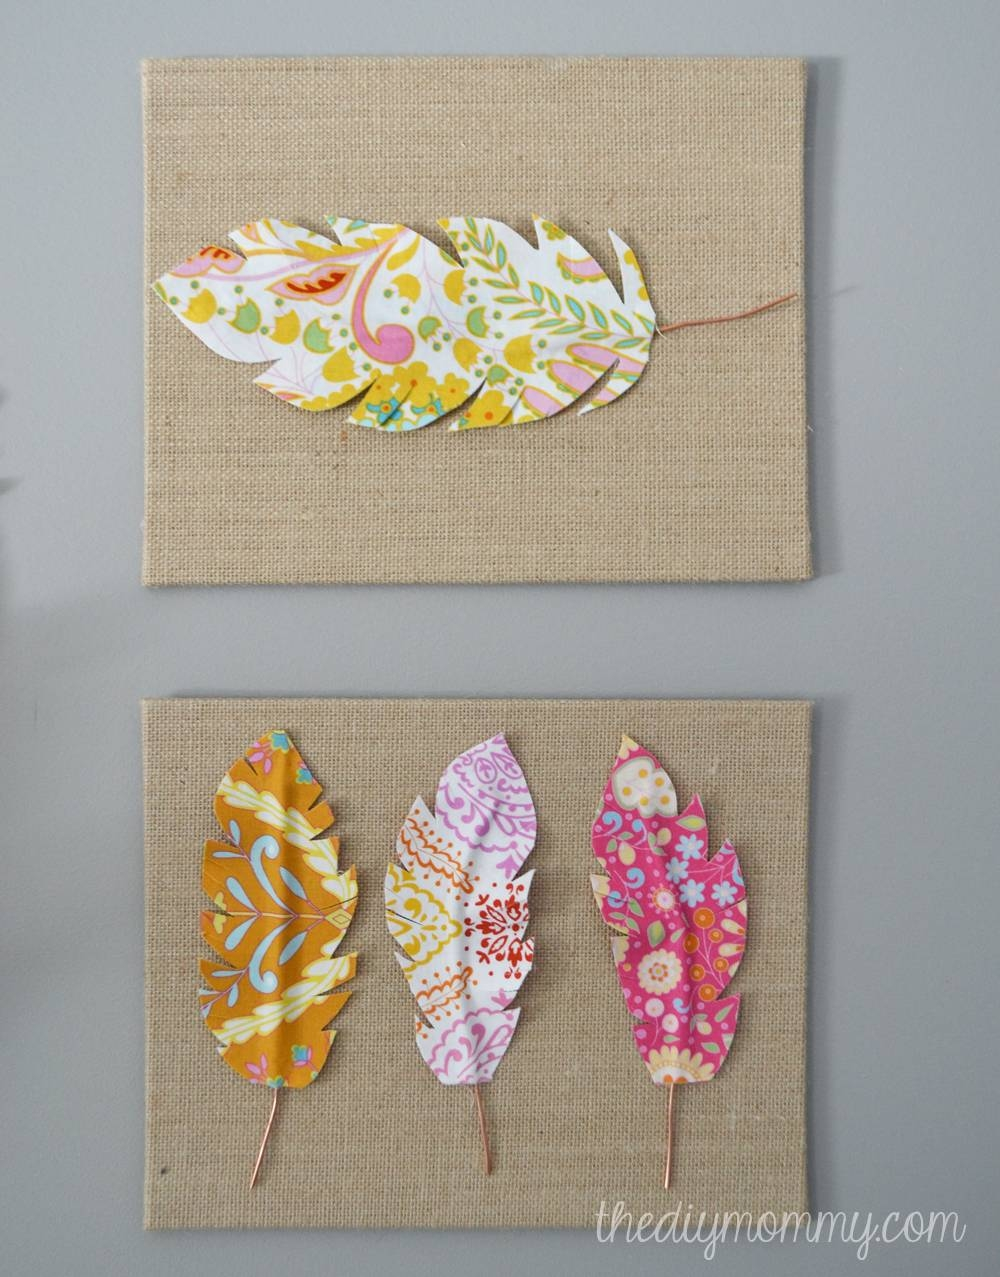 Make Fabric Feather Wall Art | The Diy Mommy With Regard To Recent Fabric Canvas Wall Art (View 7 of 20)